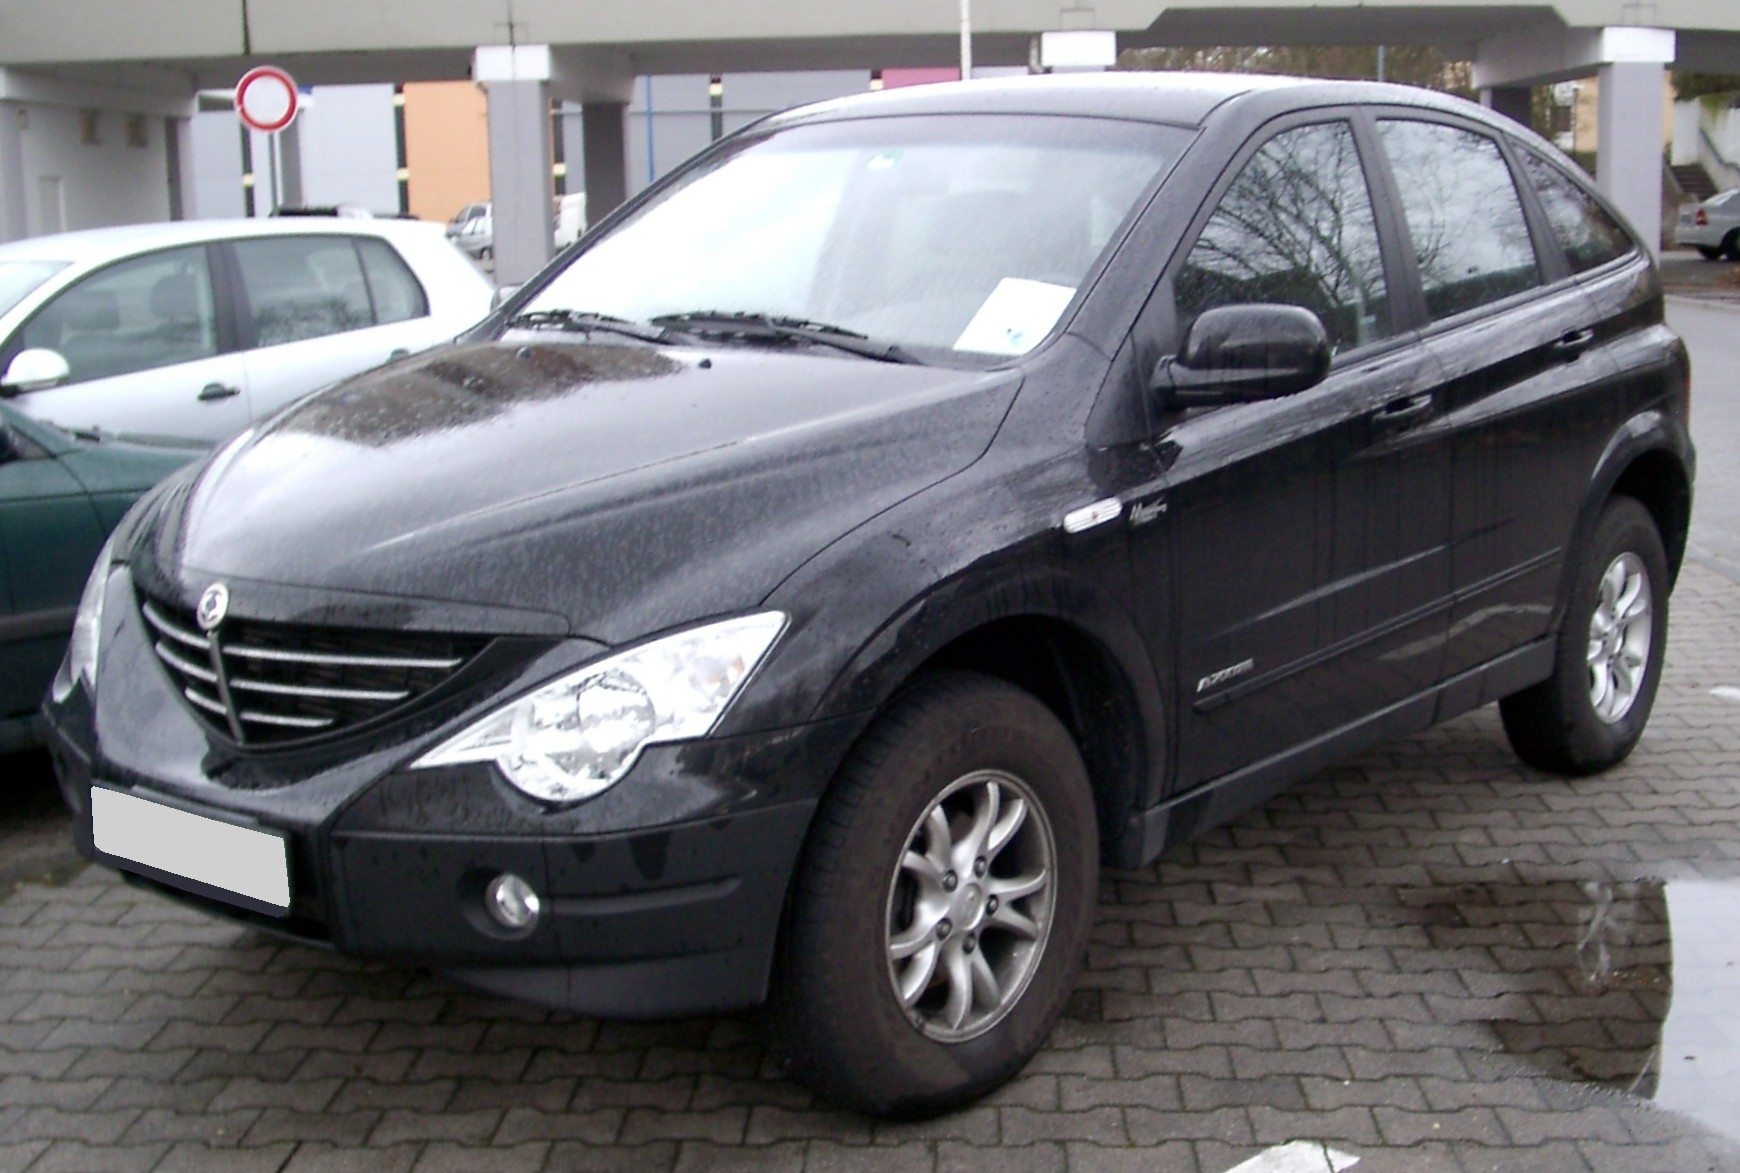 SsangYong_Actyon_front_20080303